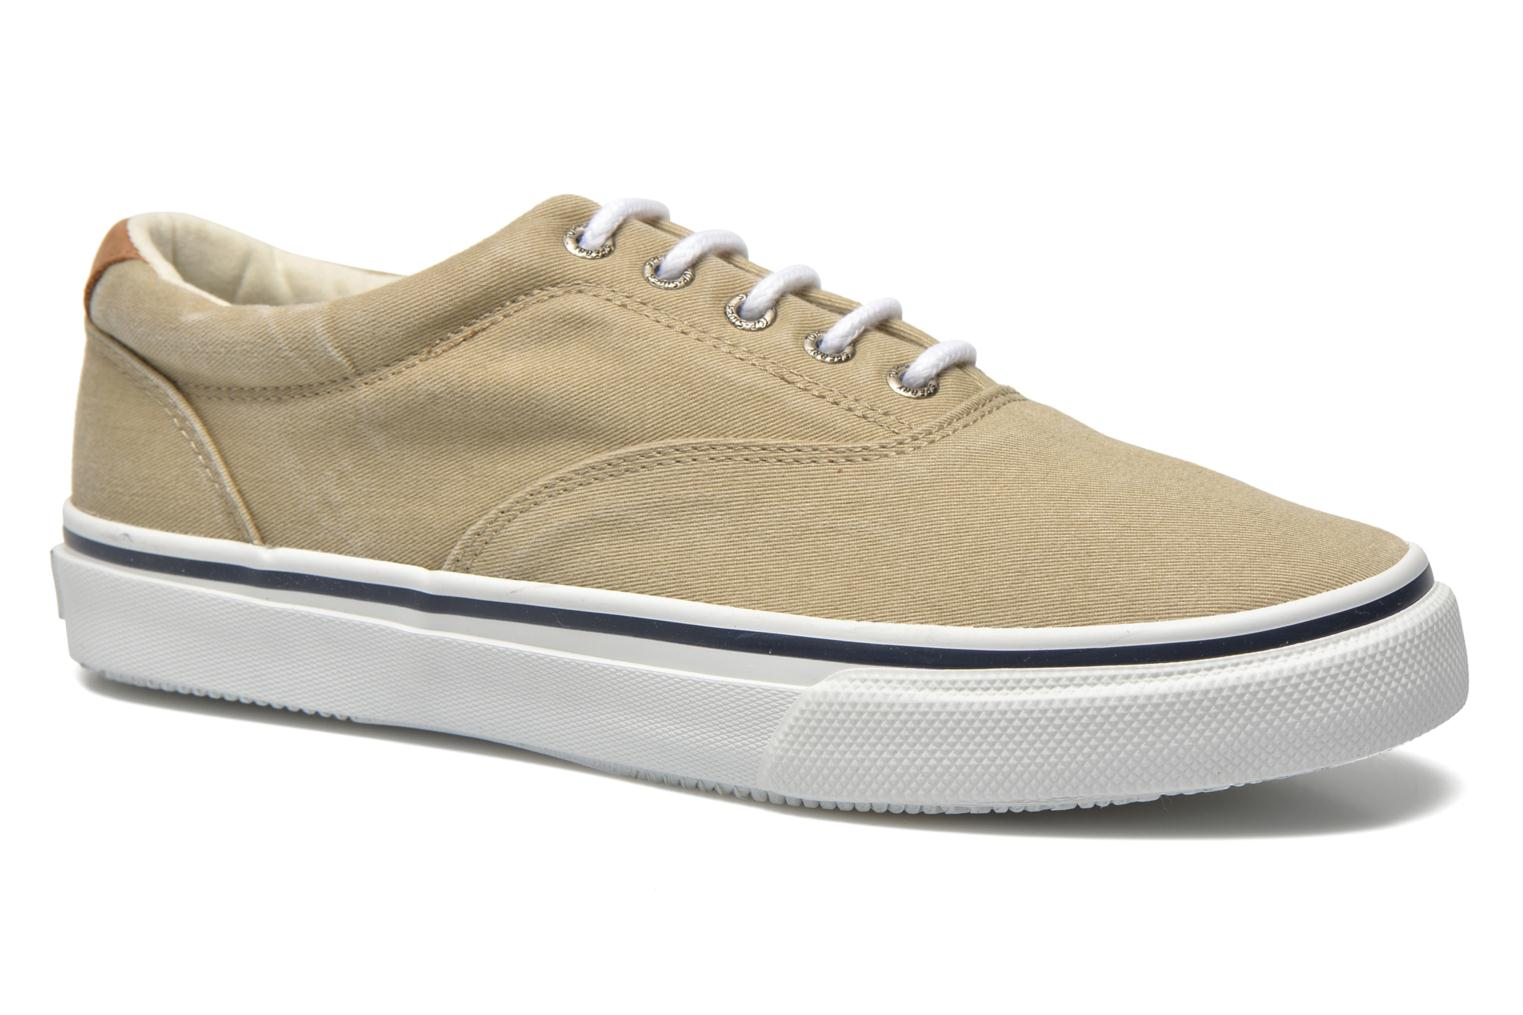 Sneakers Striper LL CVO by Sperry Top-Sider